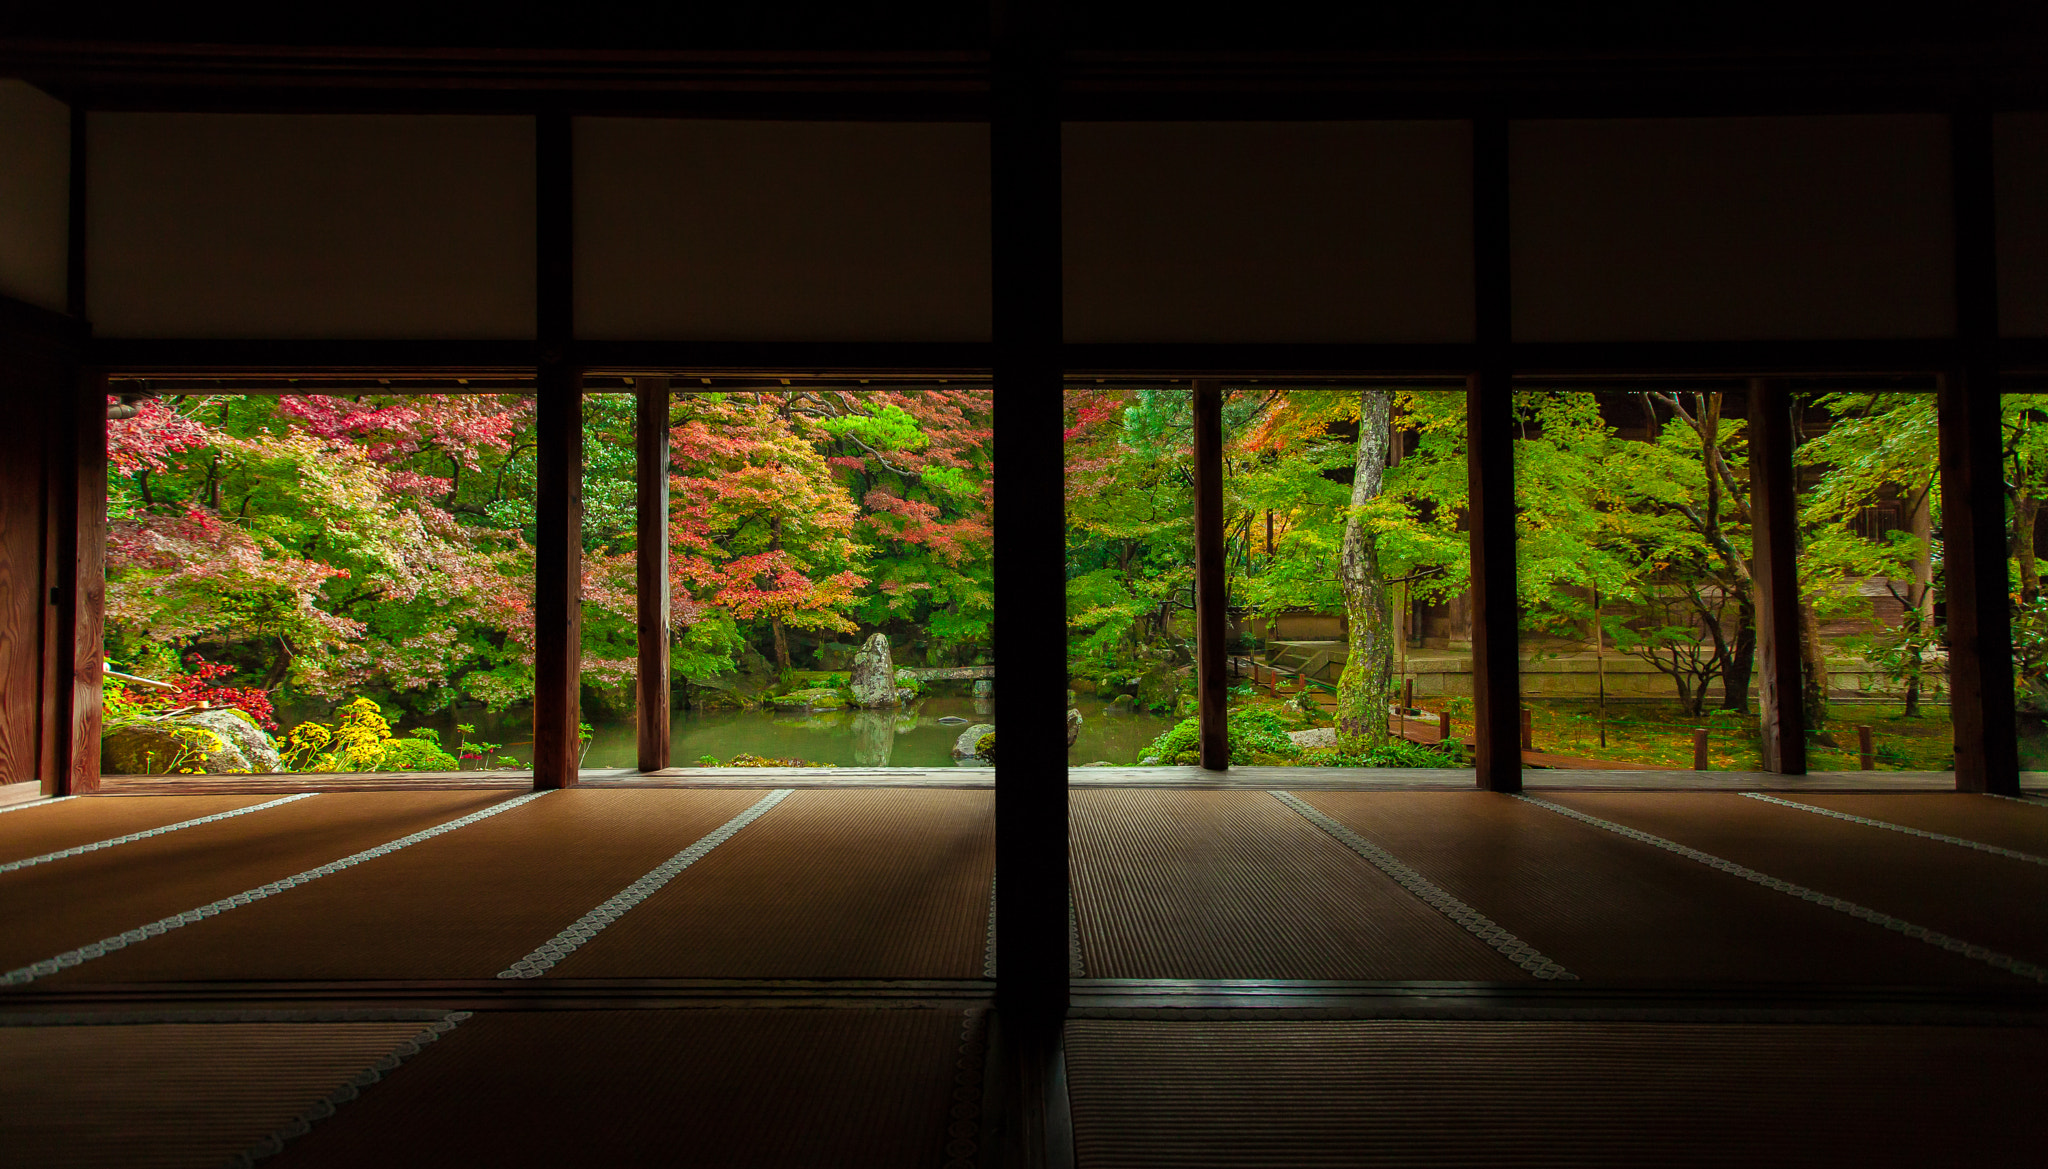 Photograph Rengeji Temple(蓮華寺) by Structuresxx  on 500px